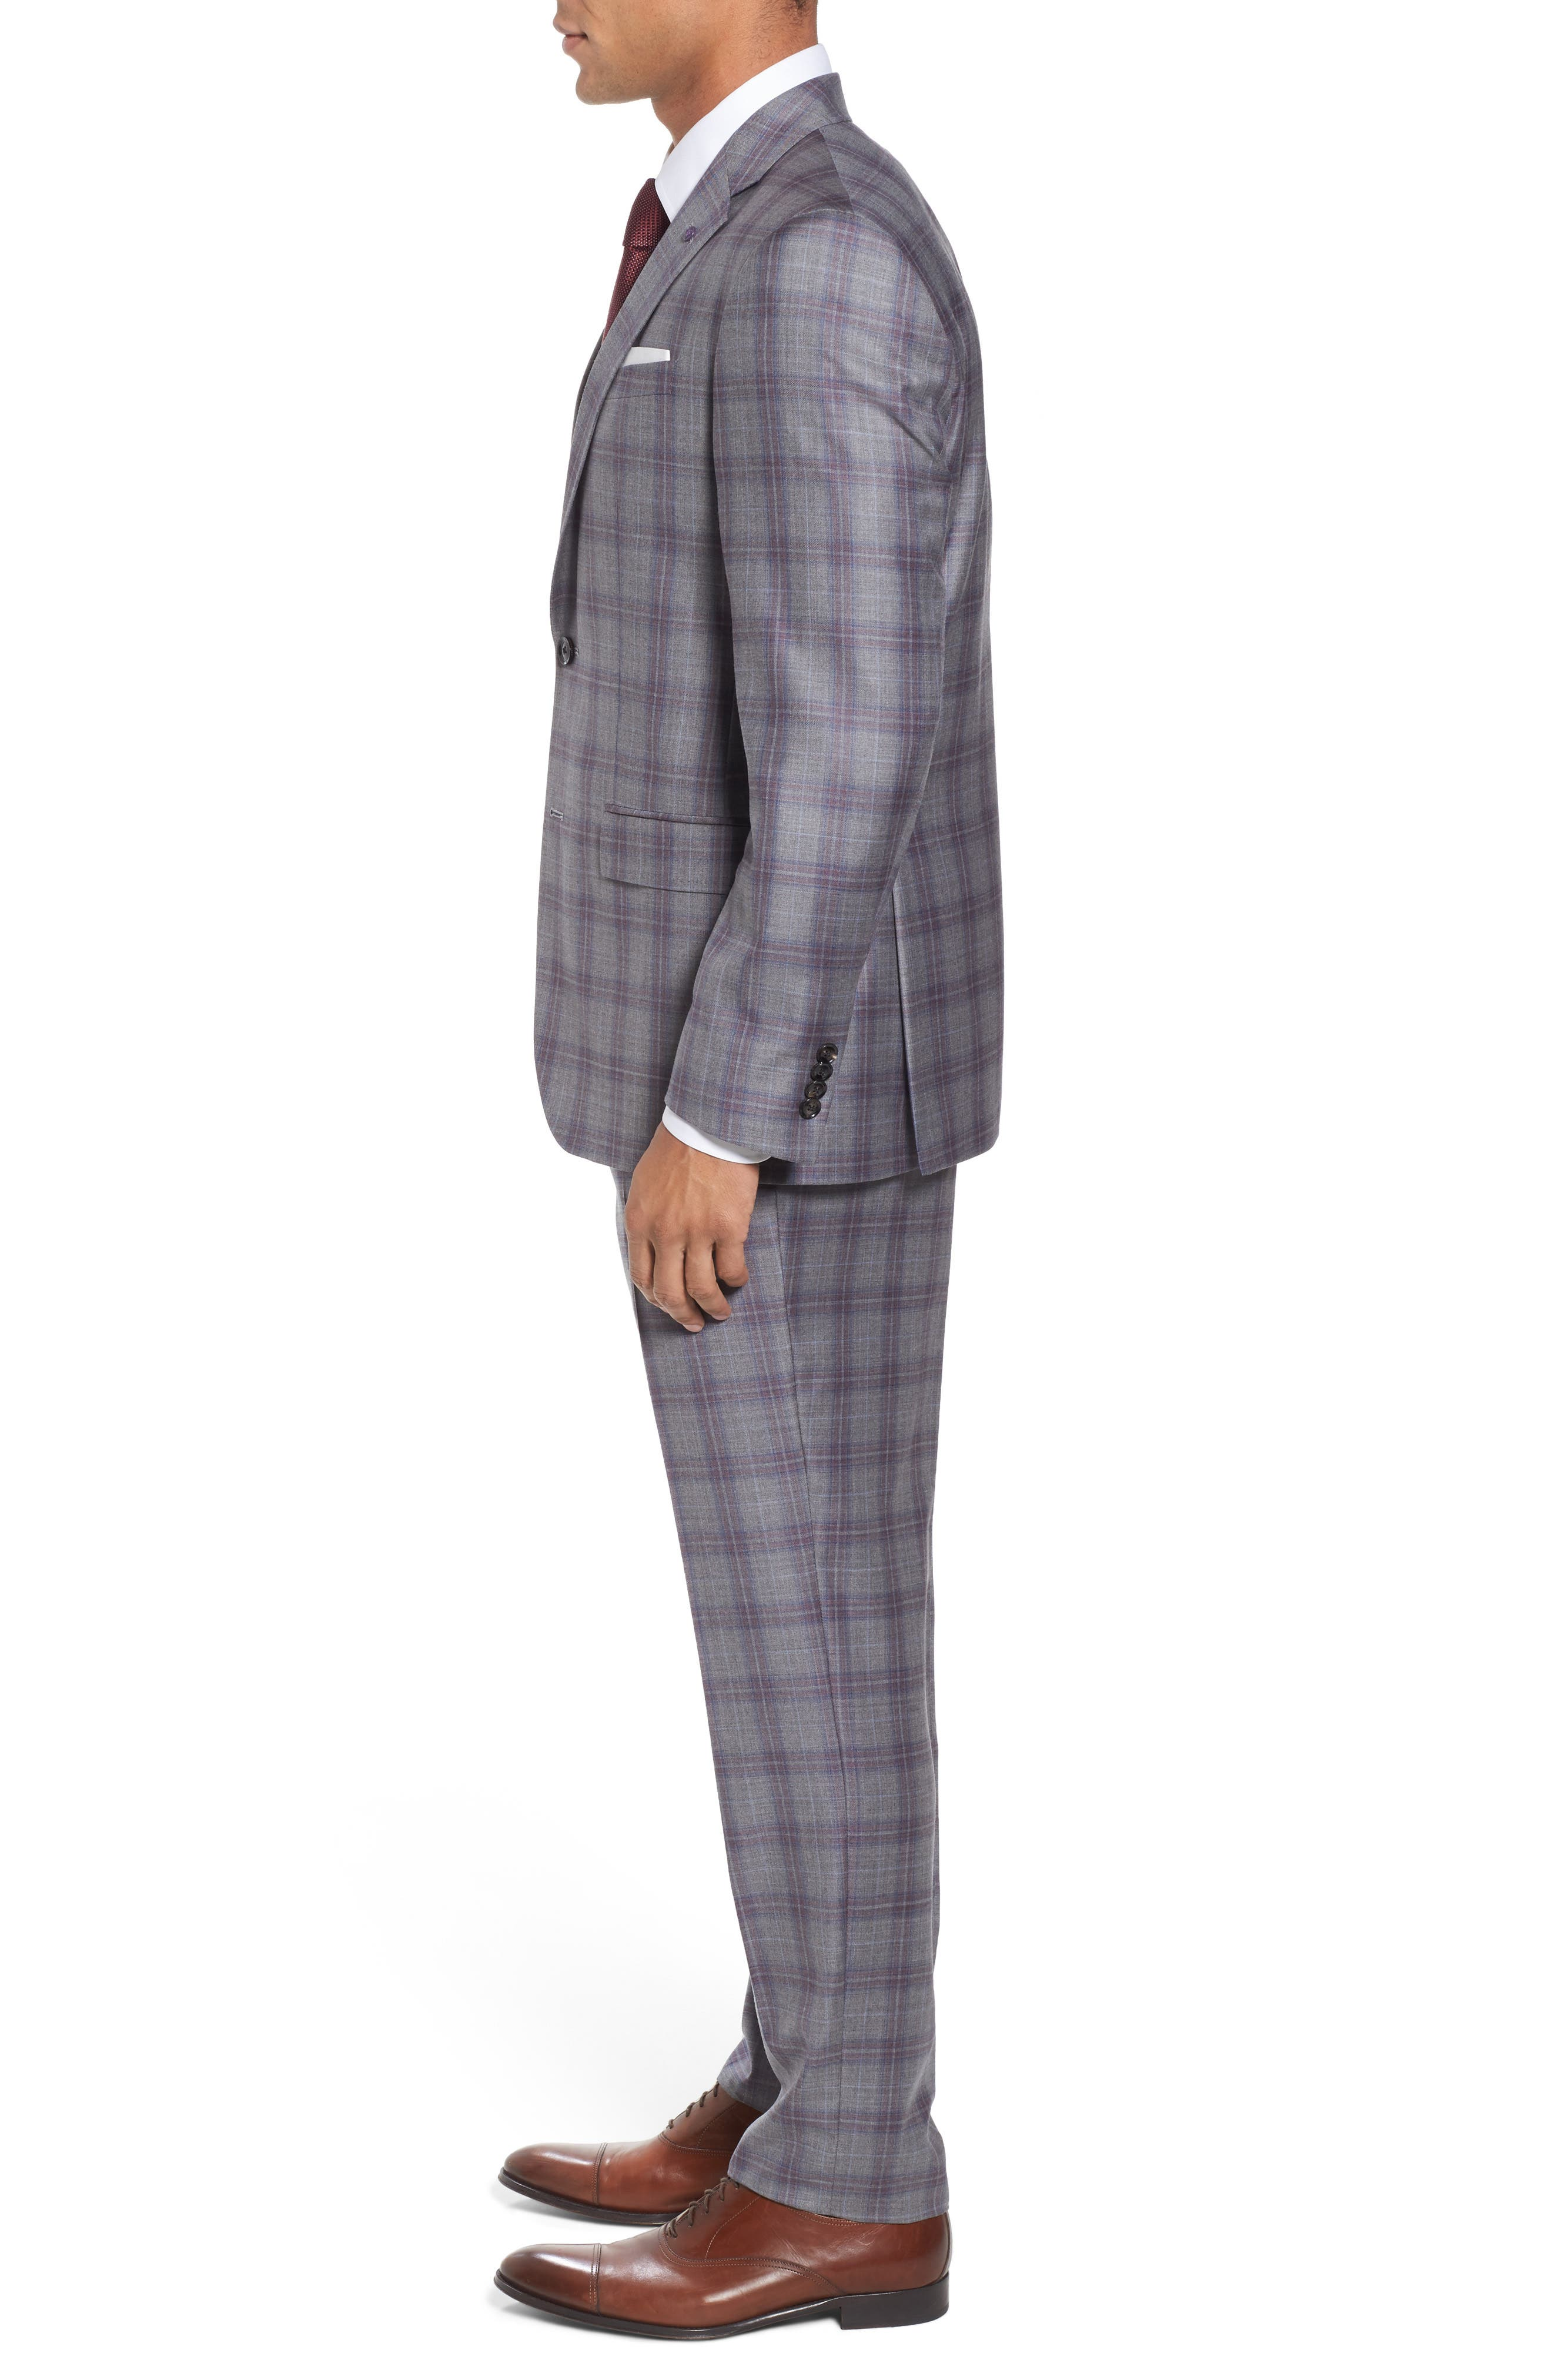 Jay Trim Fit Plaid Wool Suit,                             Alternate thumbnail 3, color,                             020